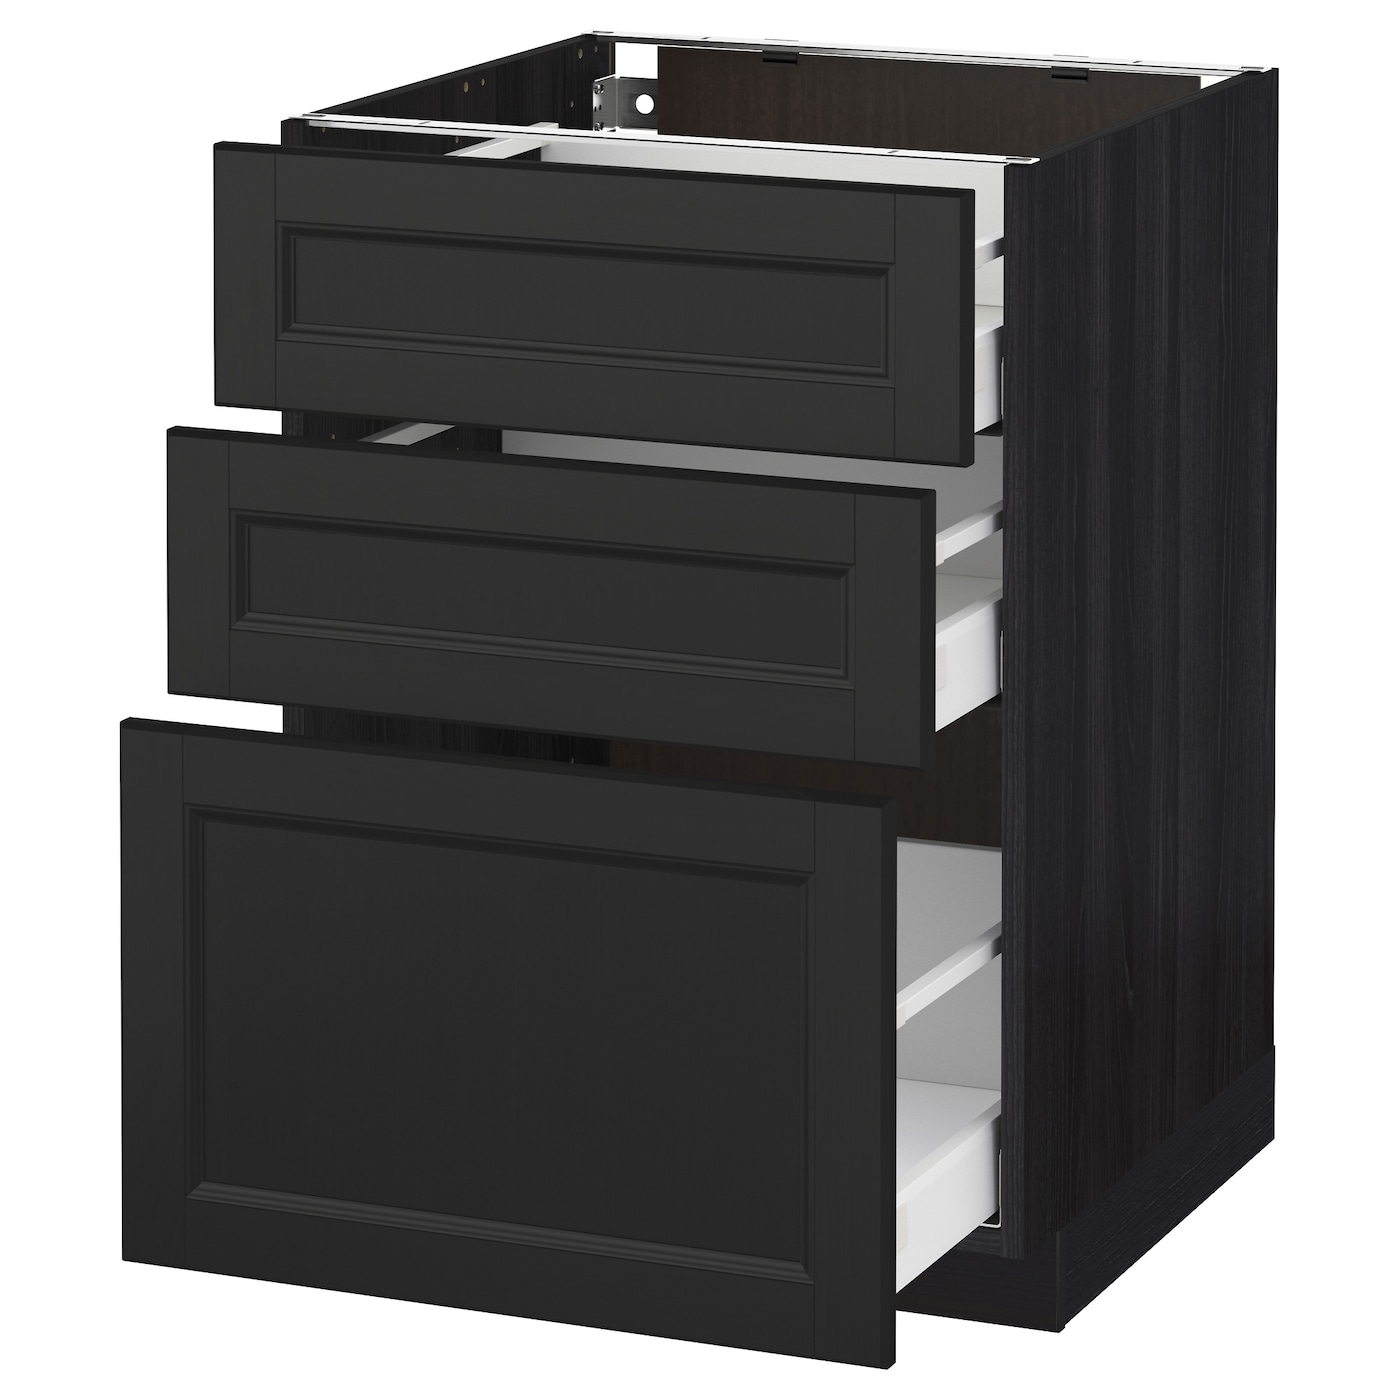 Metod maximera base cabinet with 3 drawers black laxarby for Kitchen cabinets and drawers